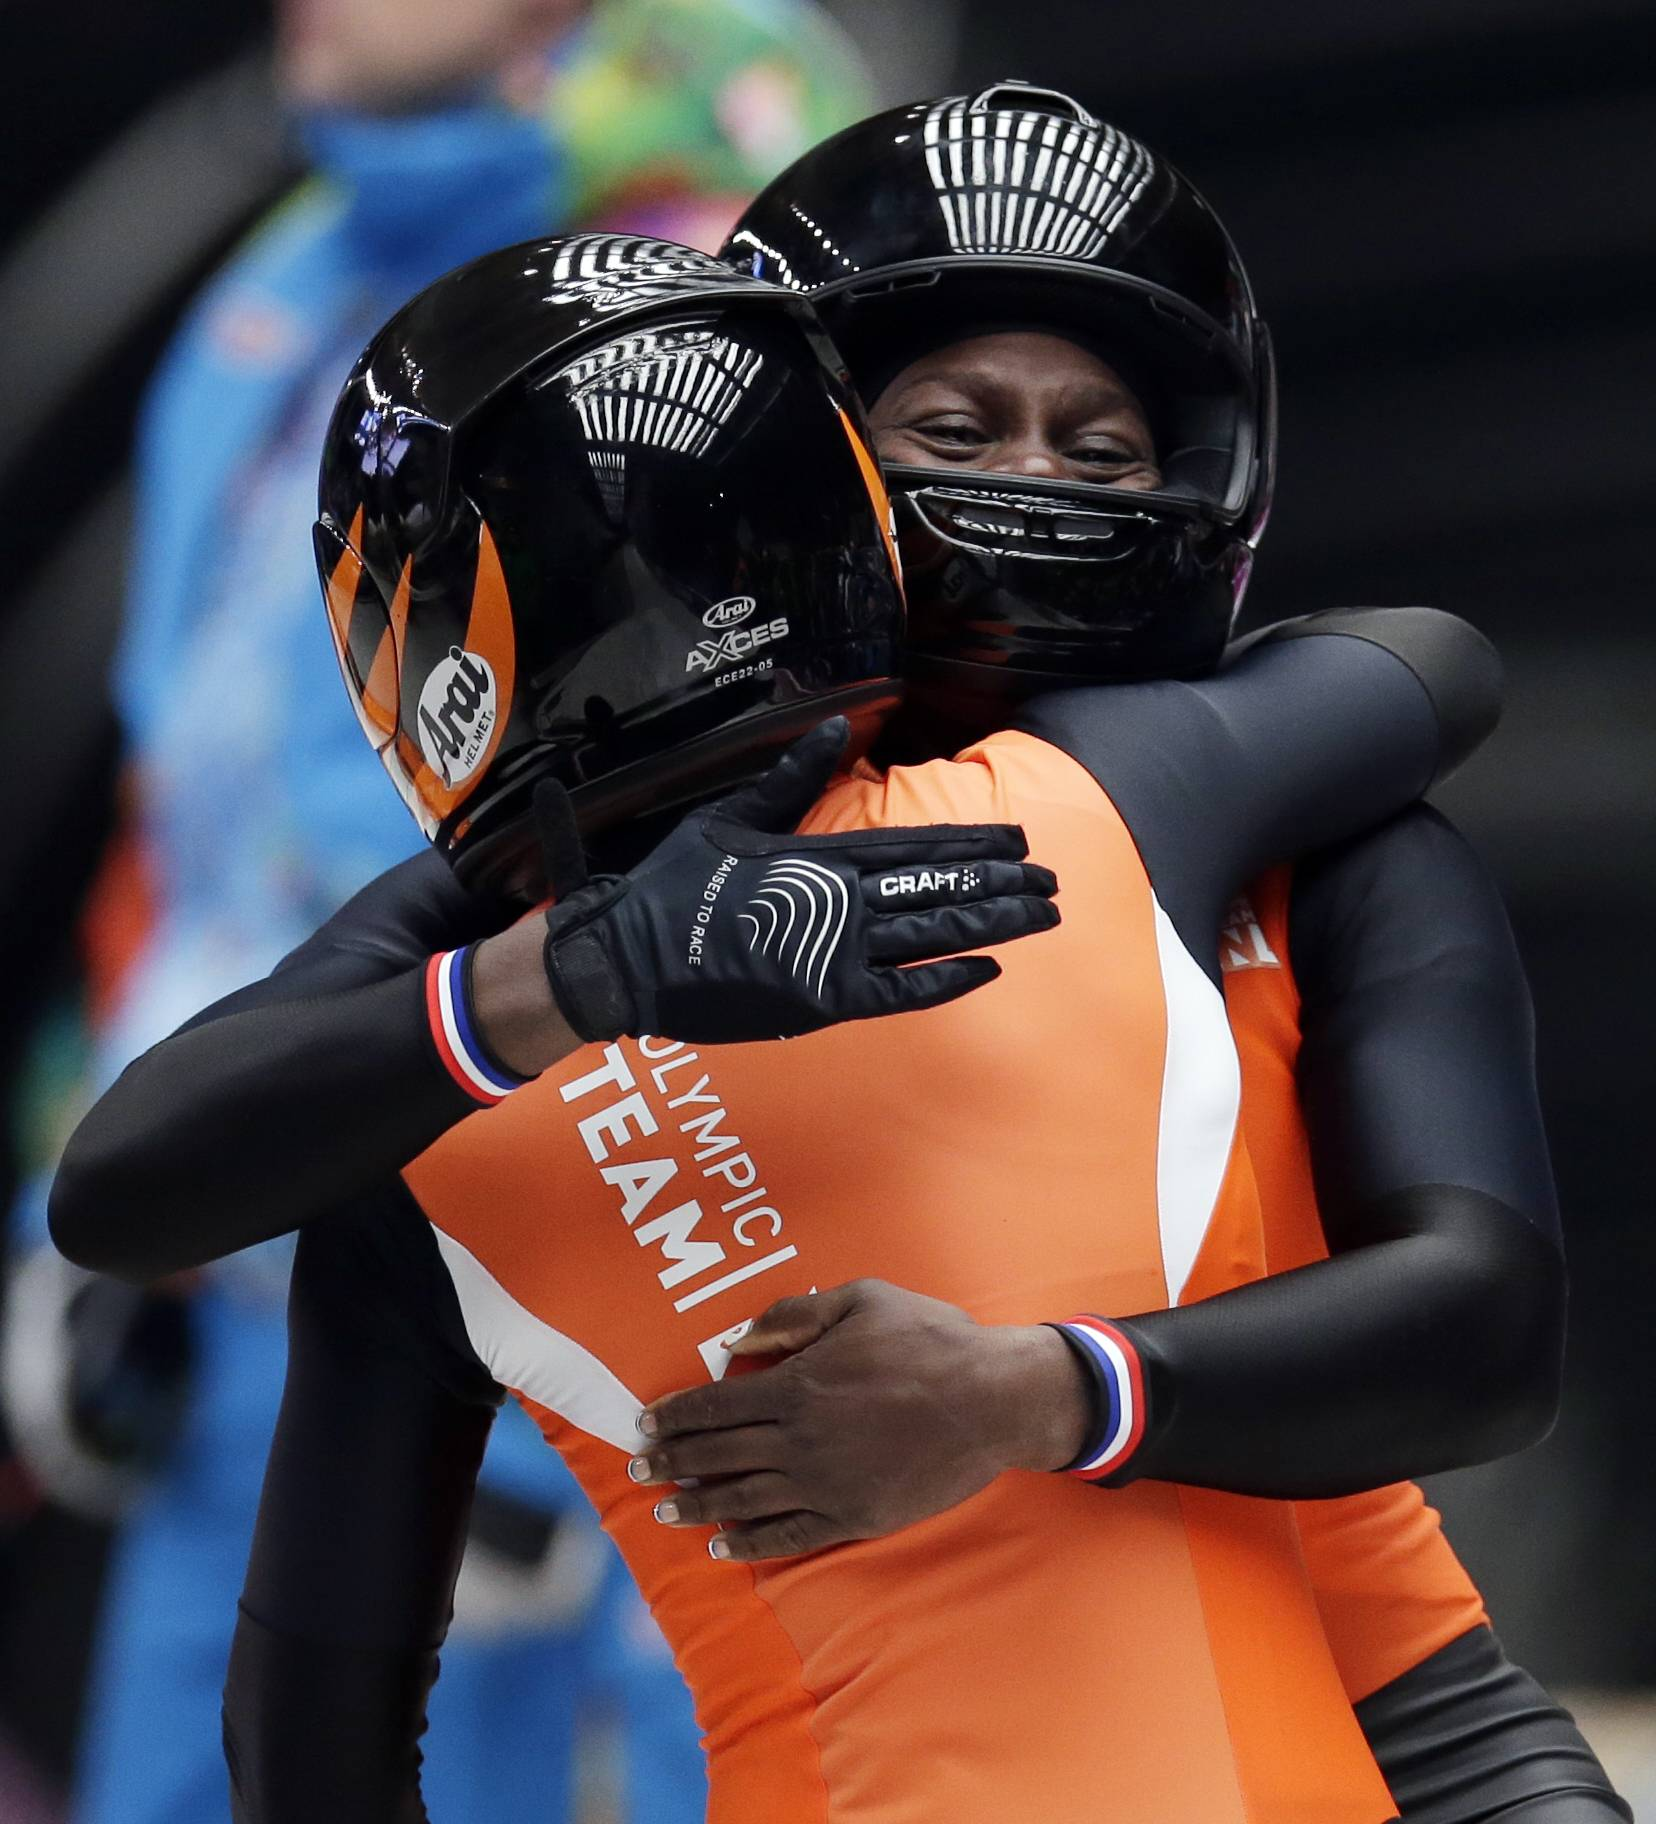 The team from the Netherlands NED-1, piloted by Esme Kamphuis with brakeman Judith Vis, hug after their final run during the women's bobsled competition.